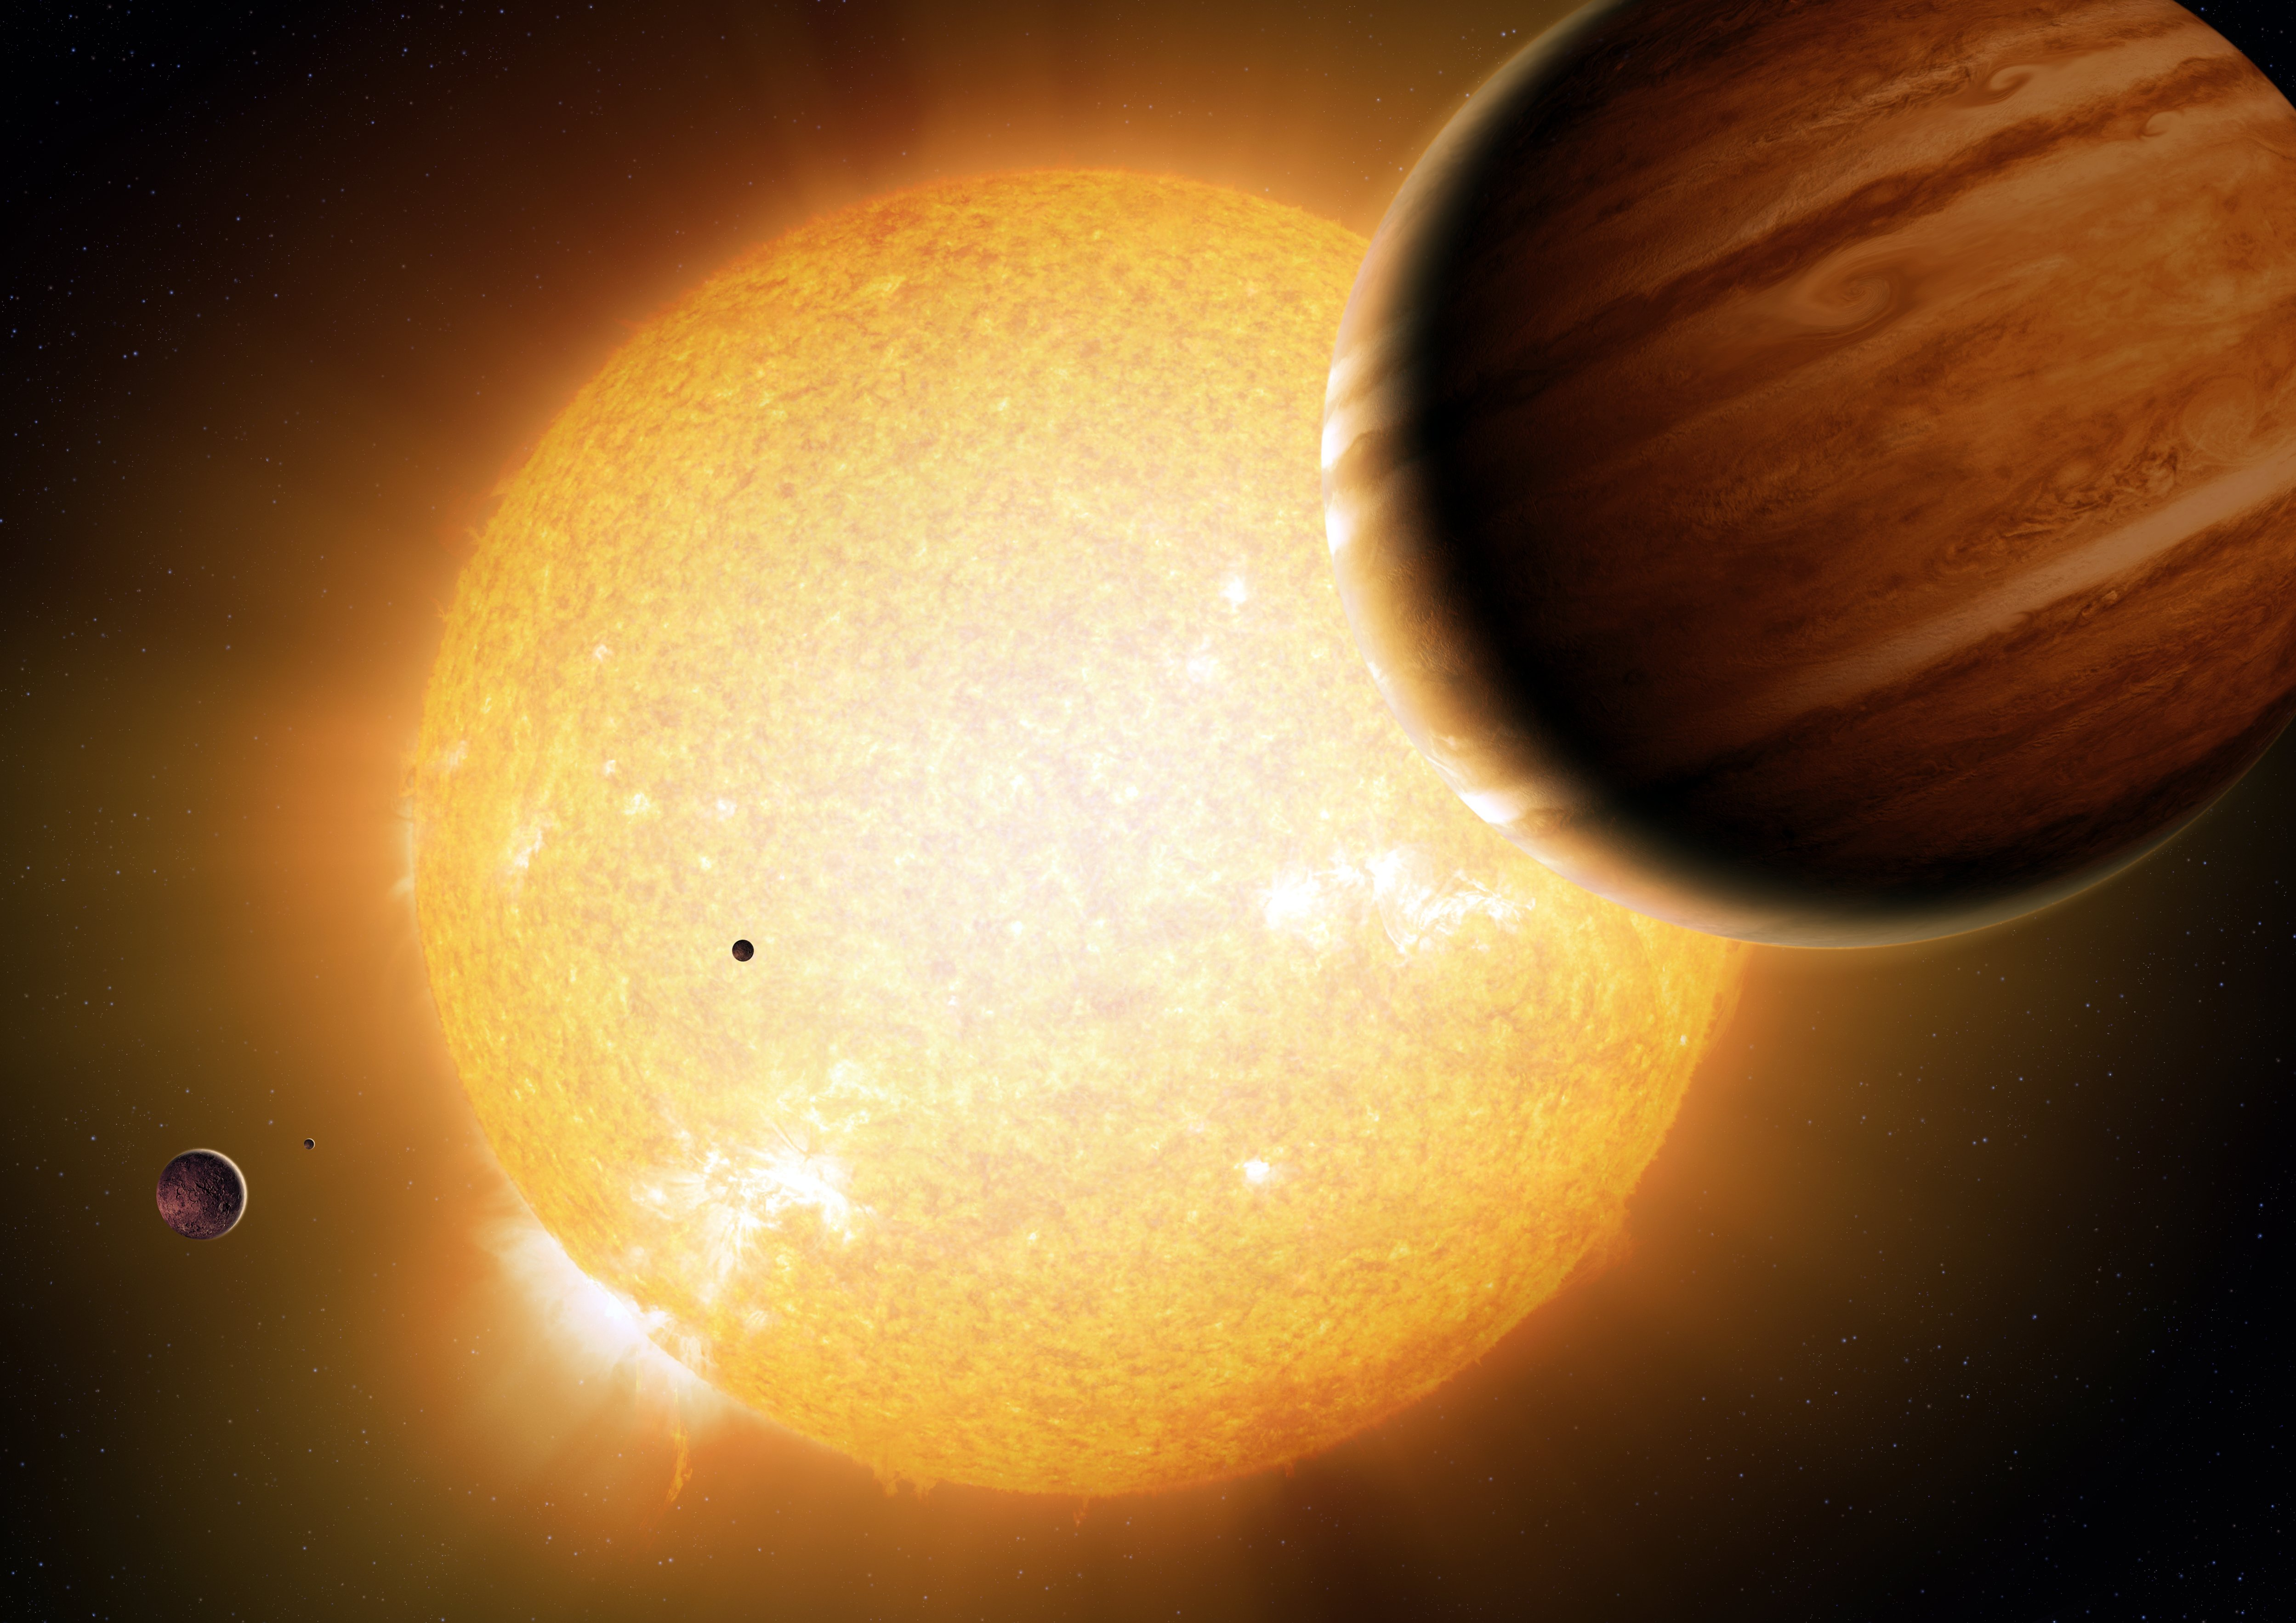 An artist's impression of a warm Jupiter orbiting its host star with companion planets.